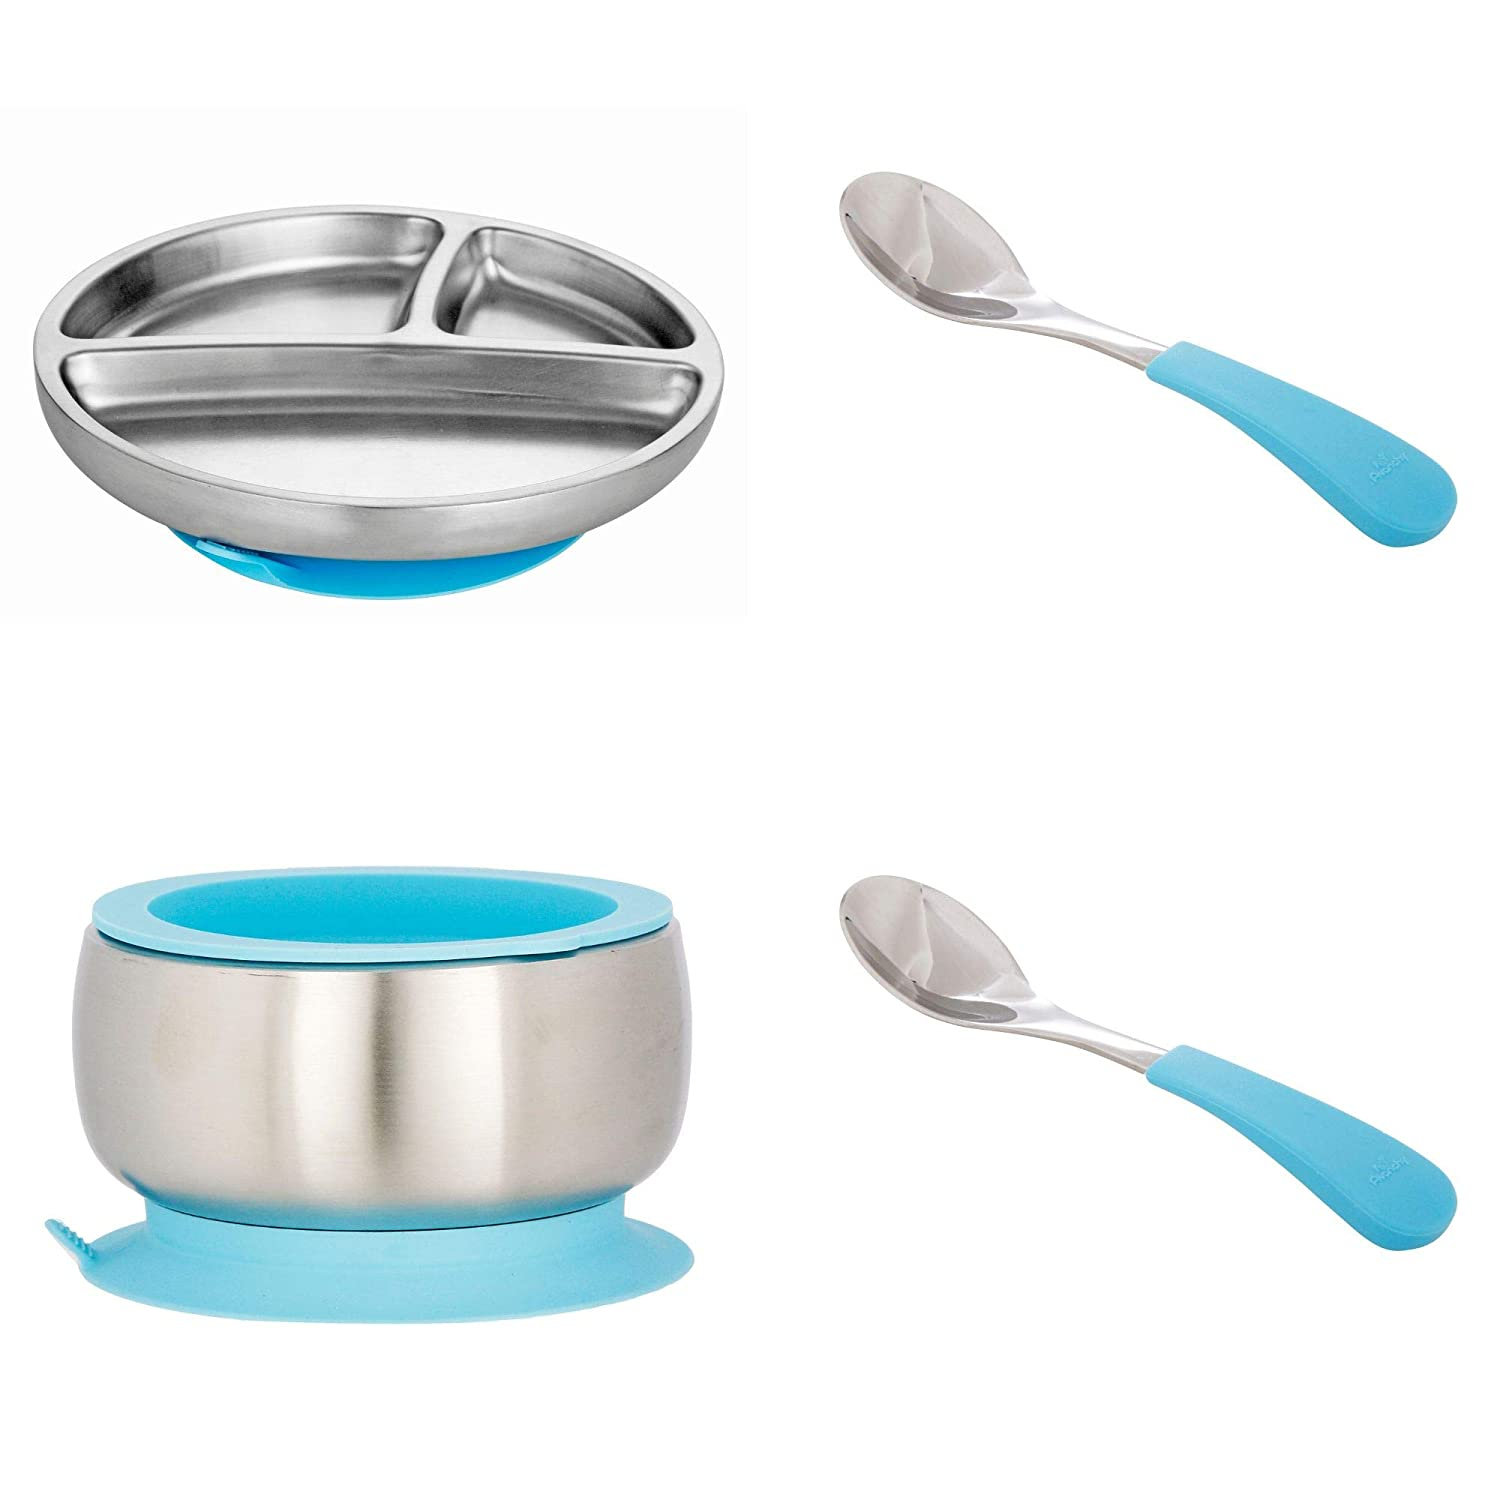 Avanchy Stainless Steel Toddler Feeding Divided Plate, Bowl & Spoons + Silicone Suction, Infant, Kid oder Child Plates. 18/8, Bpa Free, Bps Free, Lead Free und Phthalate Free. (Blue Gift Set)